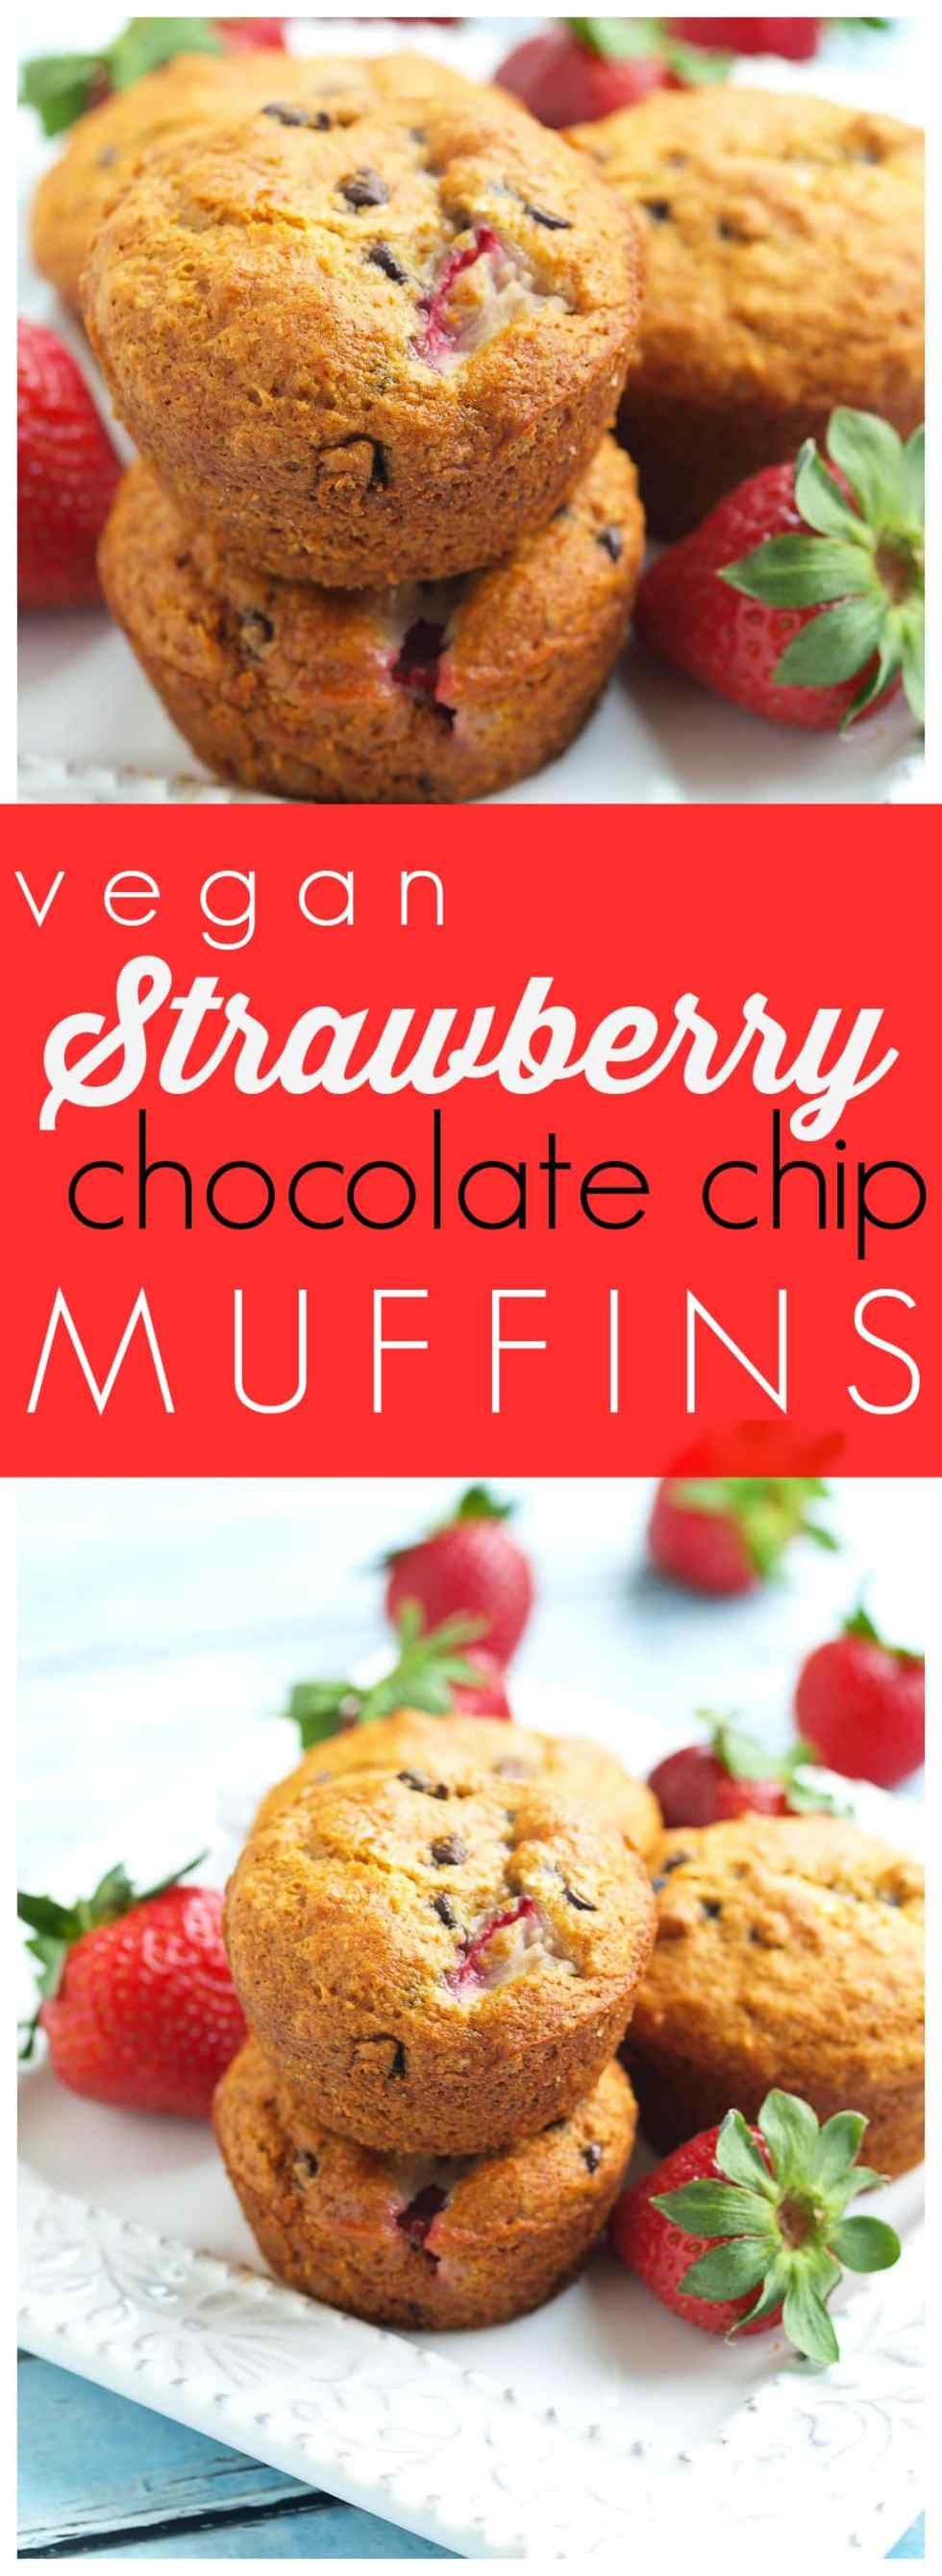 Vegan. Whole grains. No refined sugar. Delicious. A perfect healthy muffin recipe!